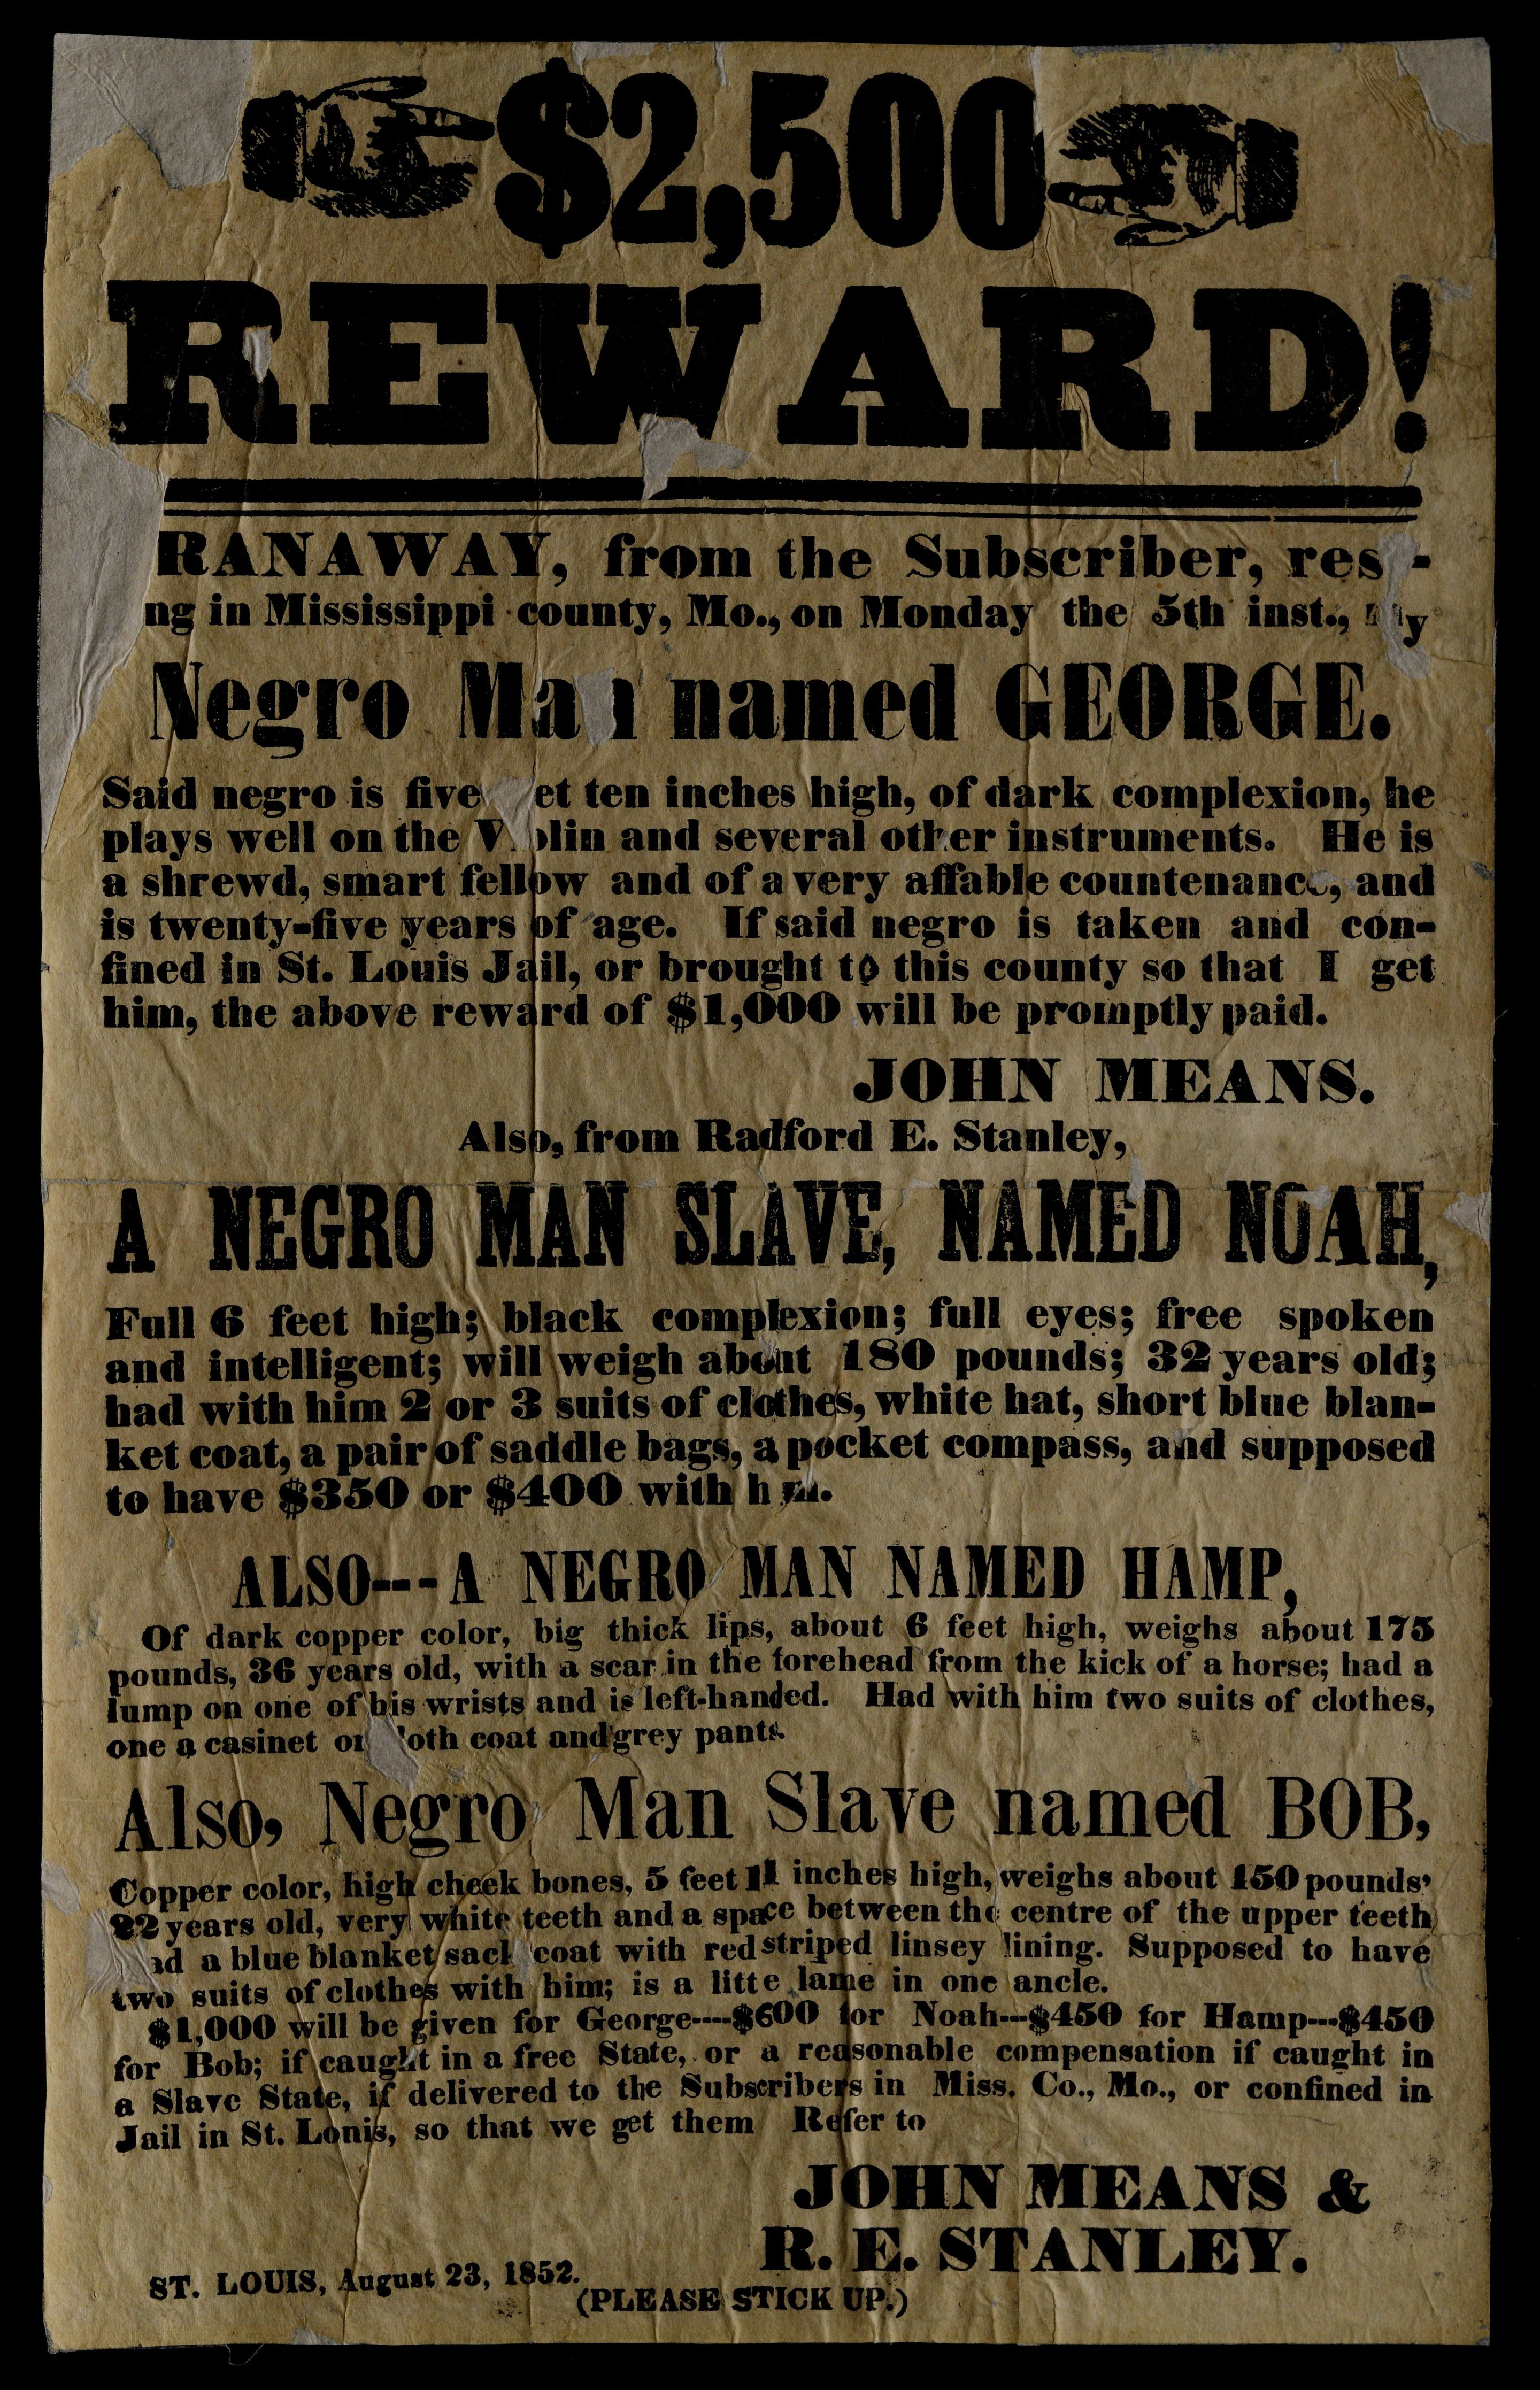 An image from Gilder Lehrman's digital archives shows an 1852 poster offering $2,500 for runaway slaves in Missouri.